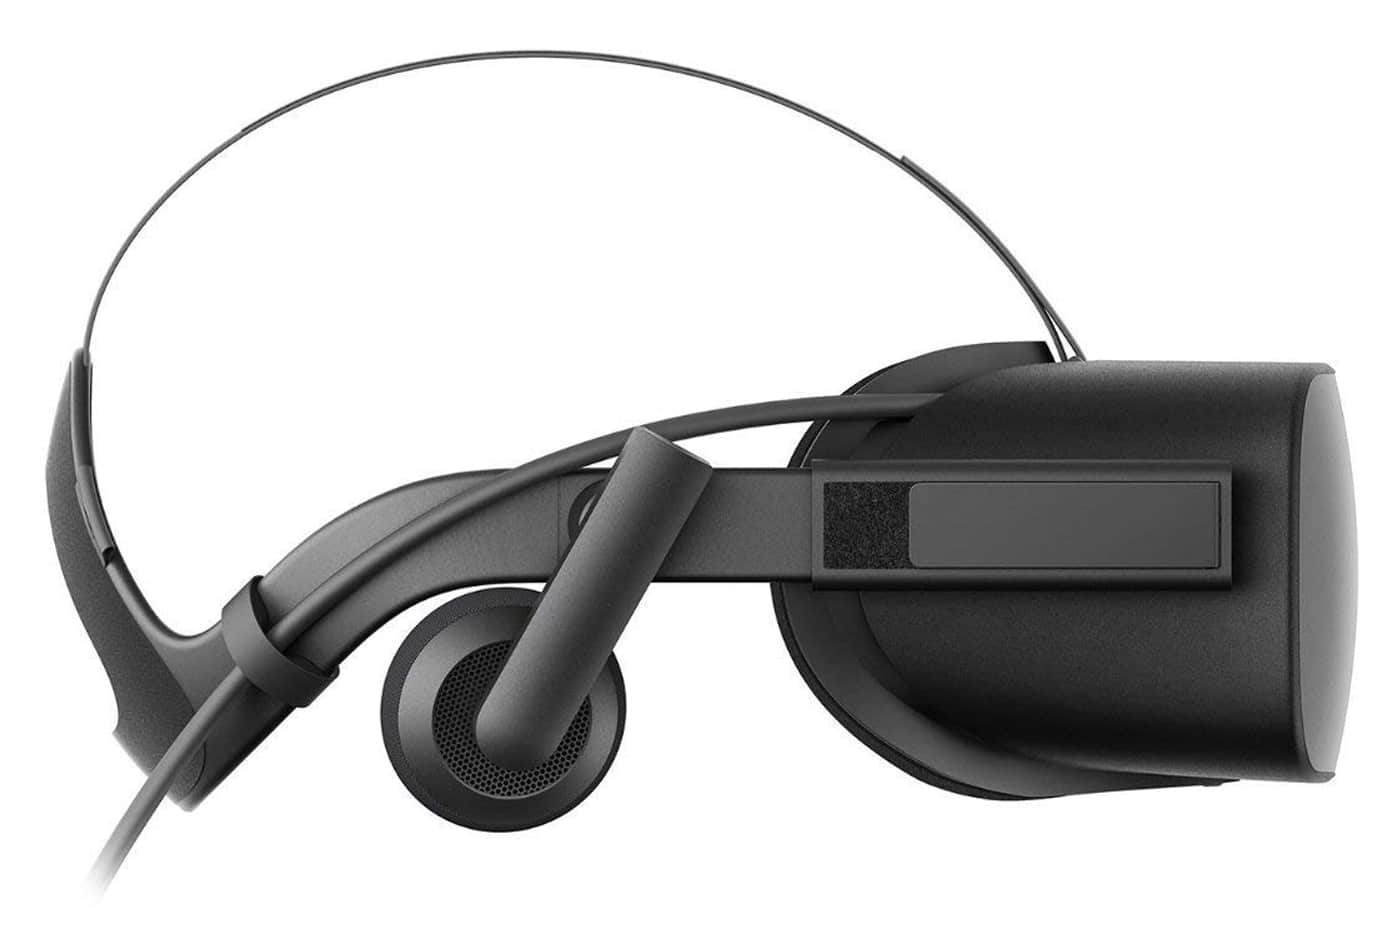 Side View of the Oculus Rift VR Headset